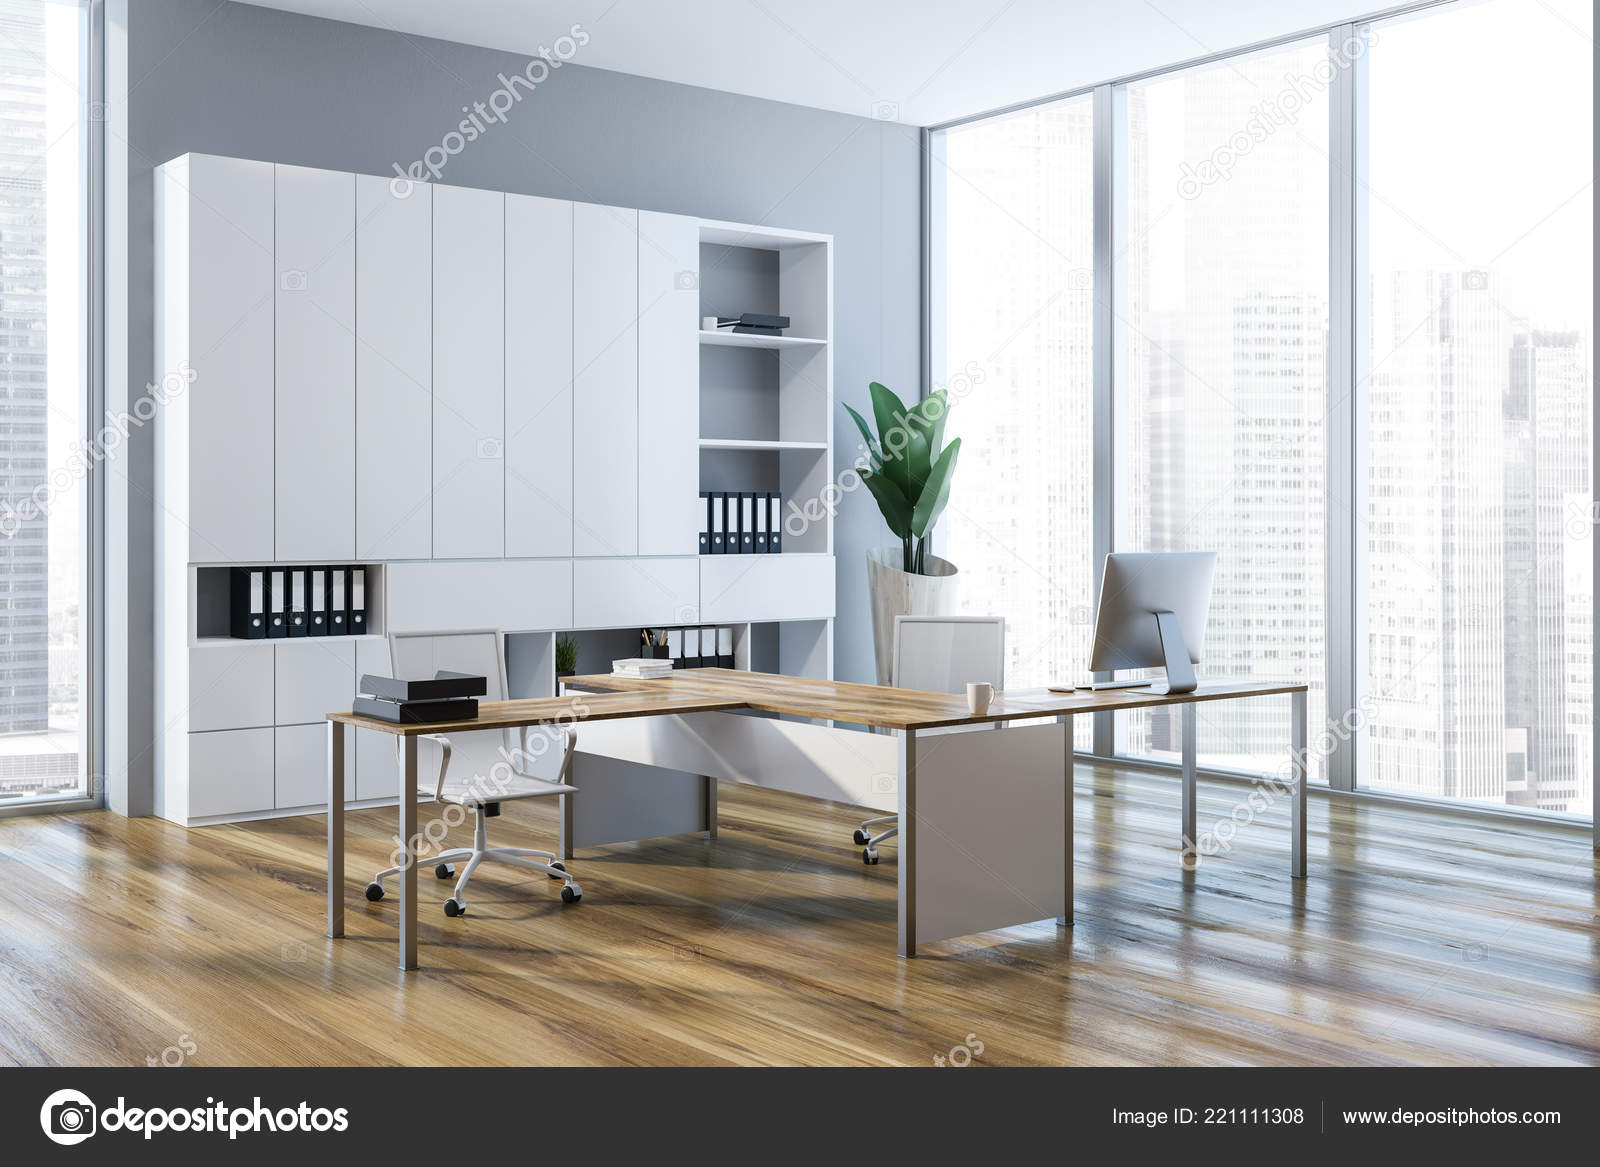 Light Wood Floors Gray Walls Light Gray Walls Ceo Office Interior Wooden Floor Loft Windows